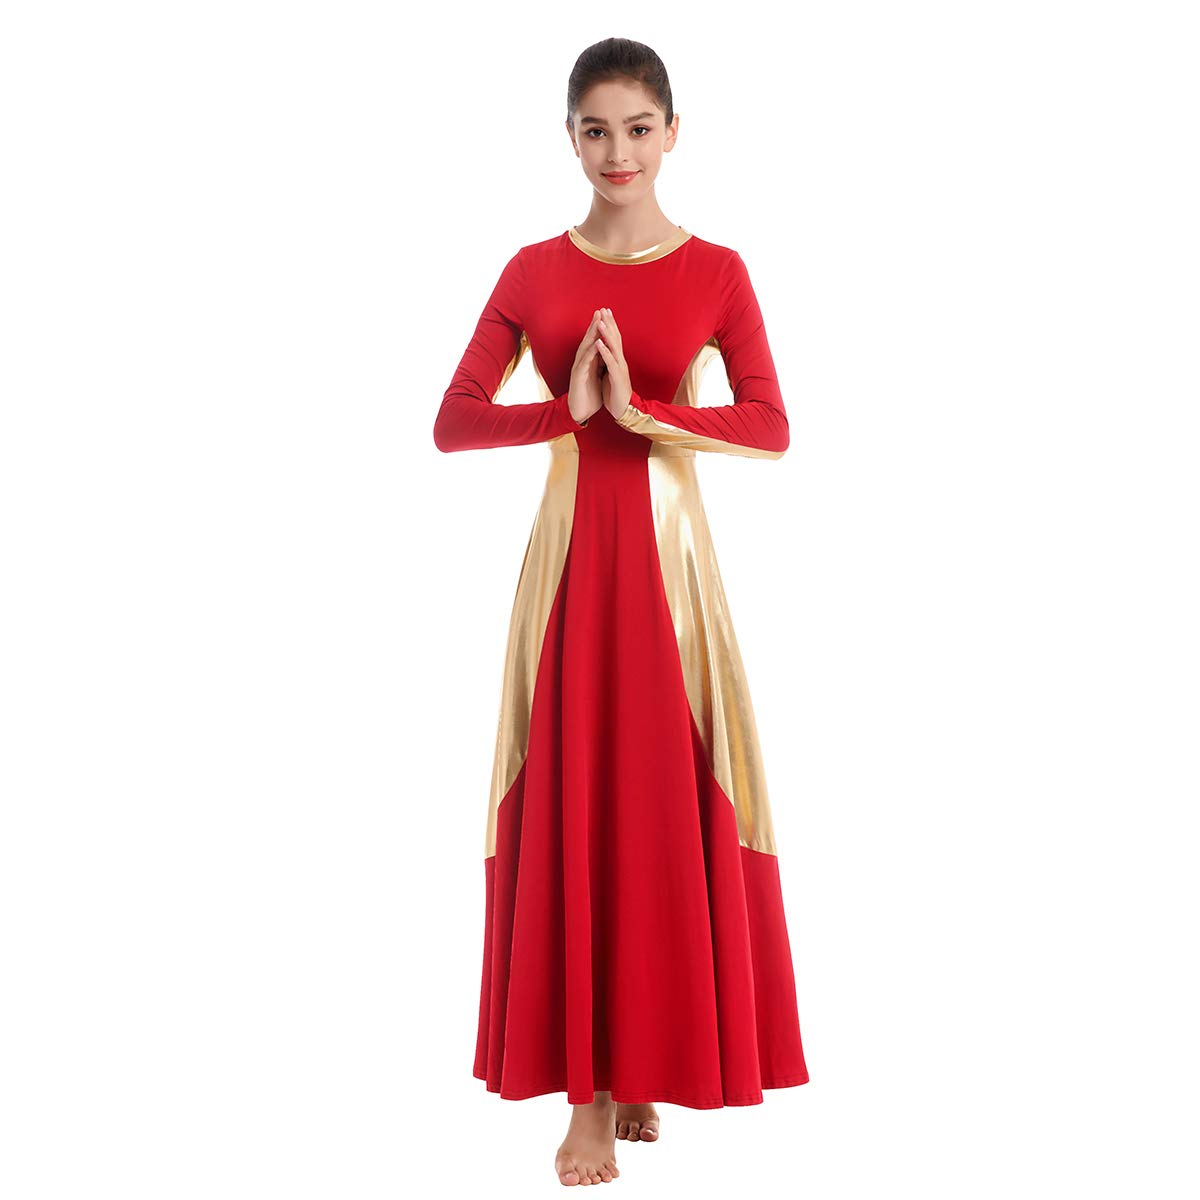 Womens Adult Bell Long Sleeve Liturgical Praise Lyrical Dance Training Dress Loose Fit Full Length Worship Ballet Ballroom Costume Swing Maxi Gown Red-Gold L by IBAKOM